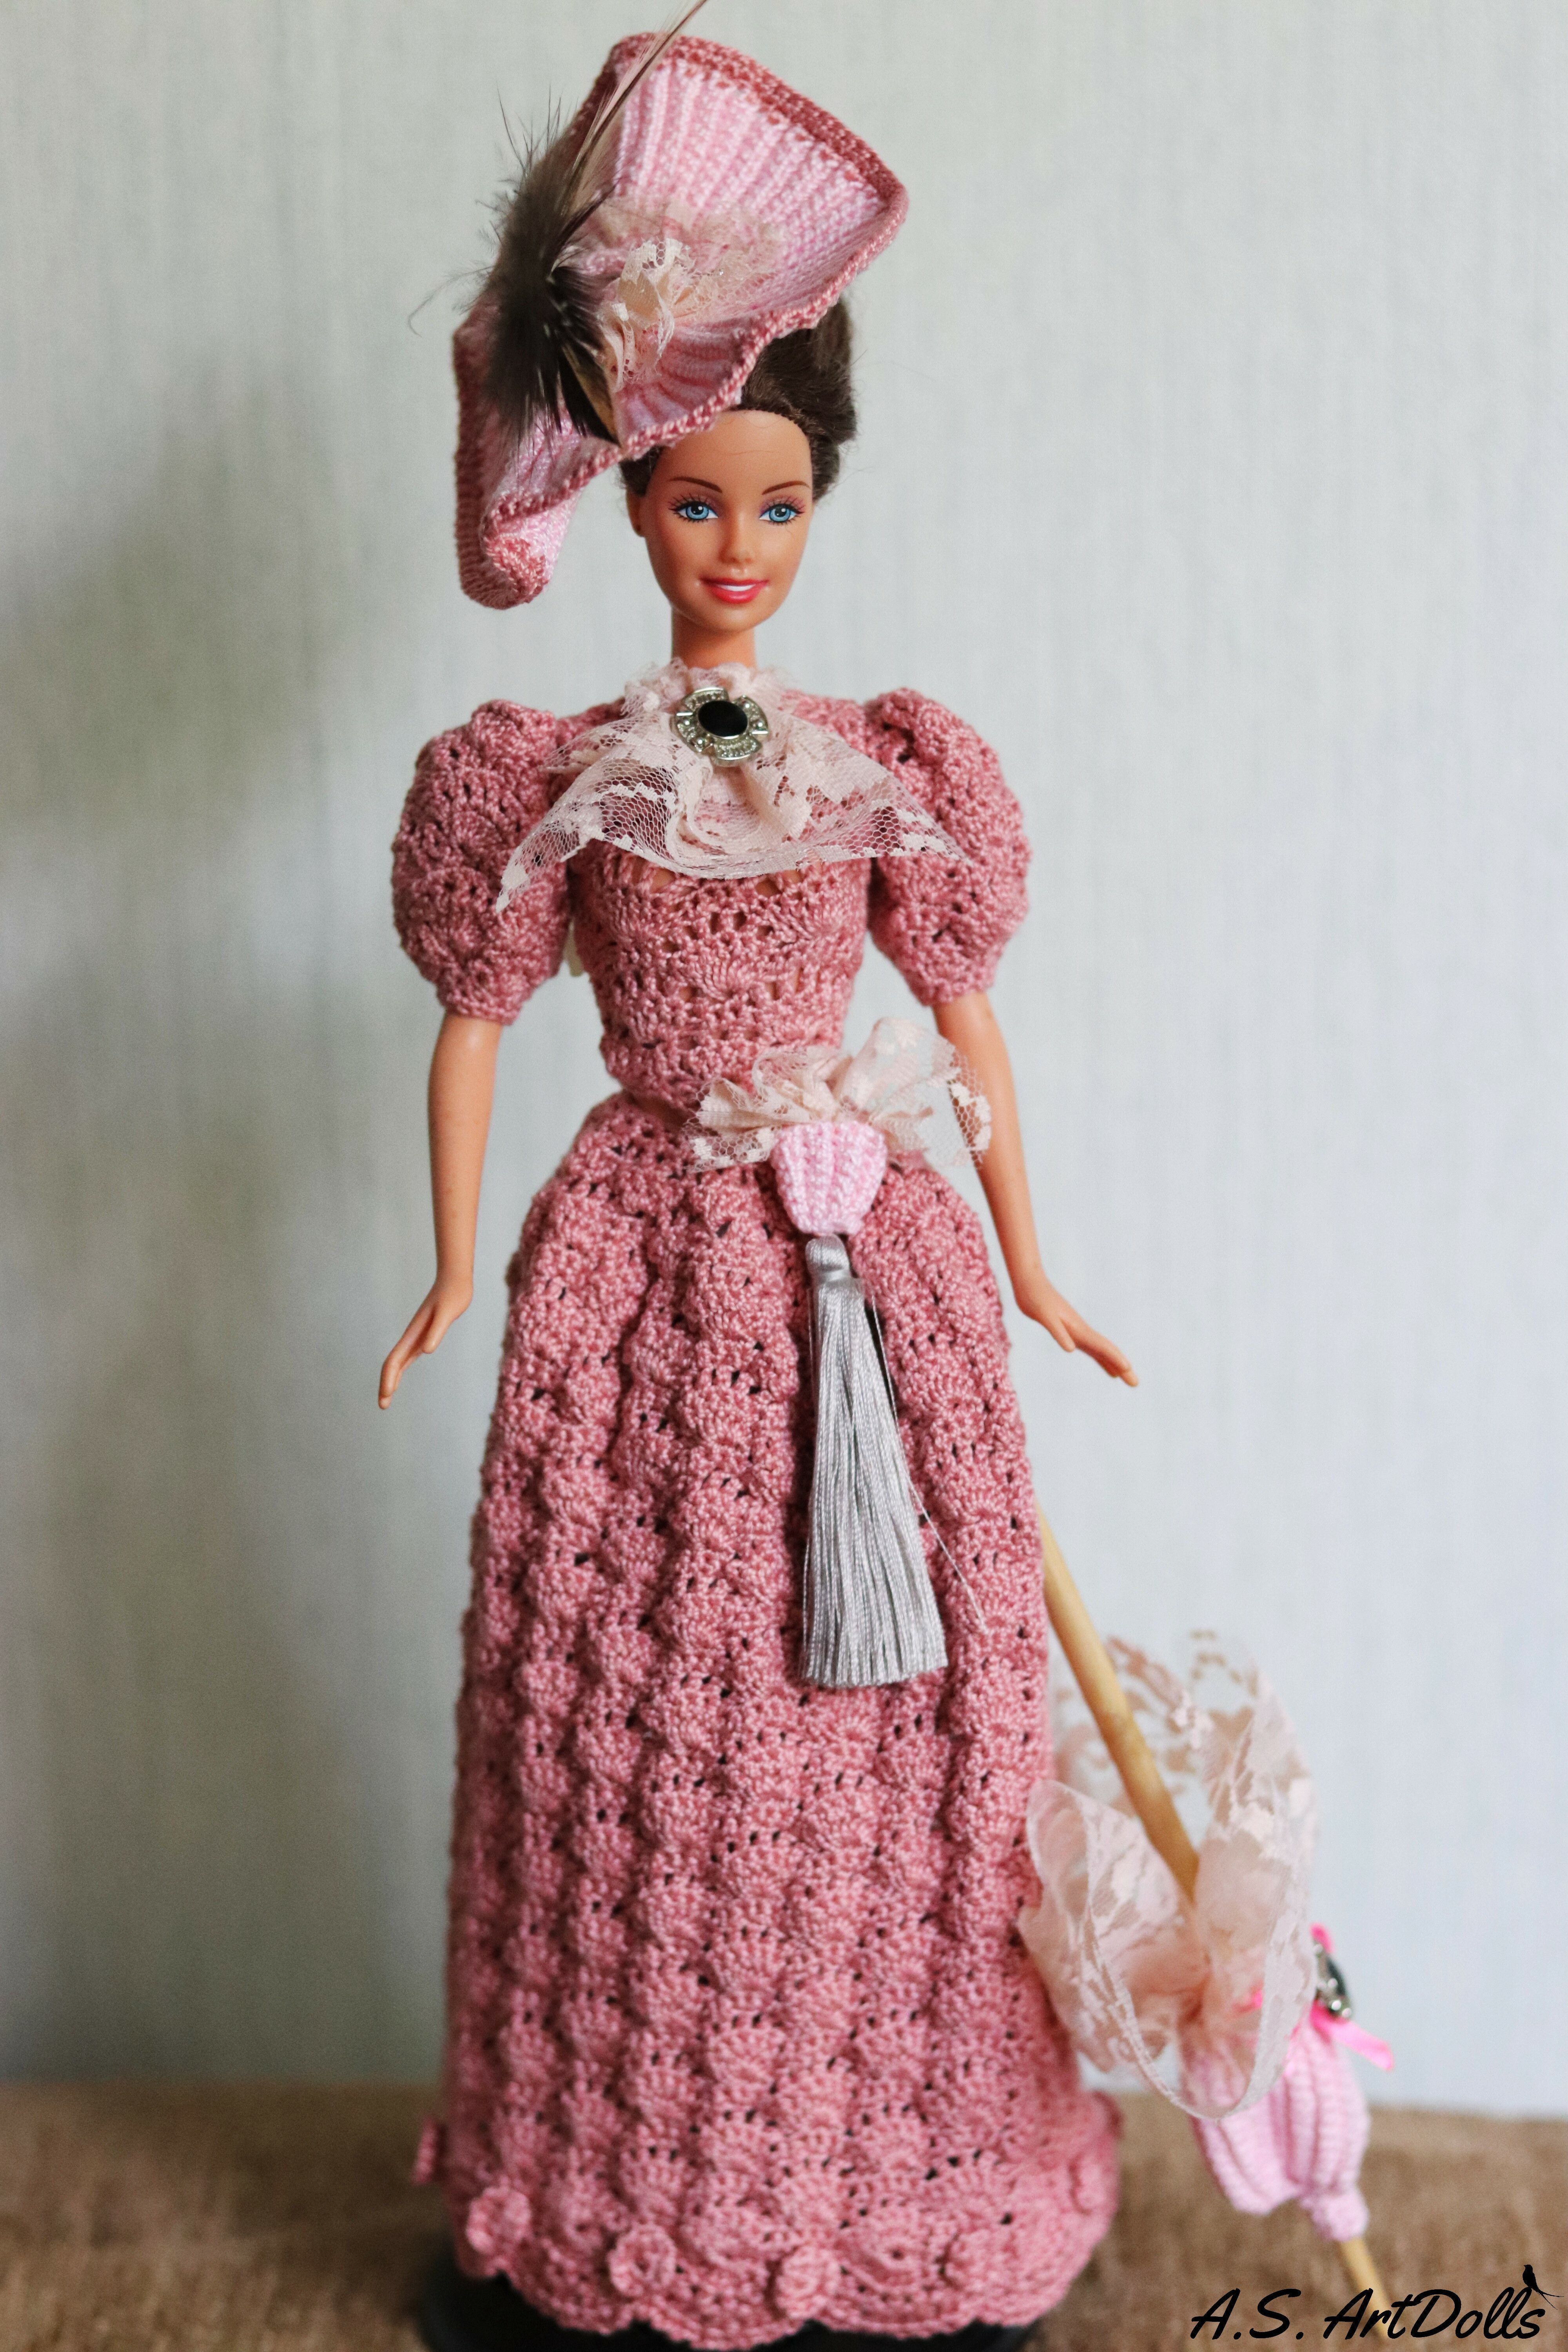 Pink crochet doll dress - Historical dolls #dolldresspatterns